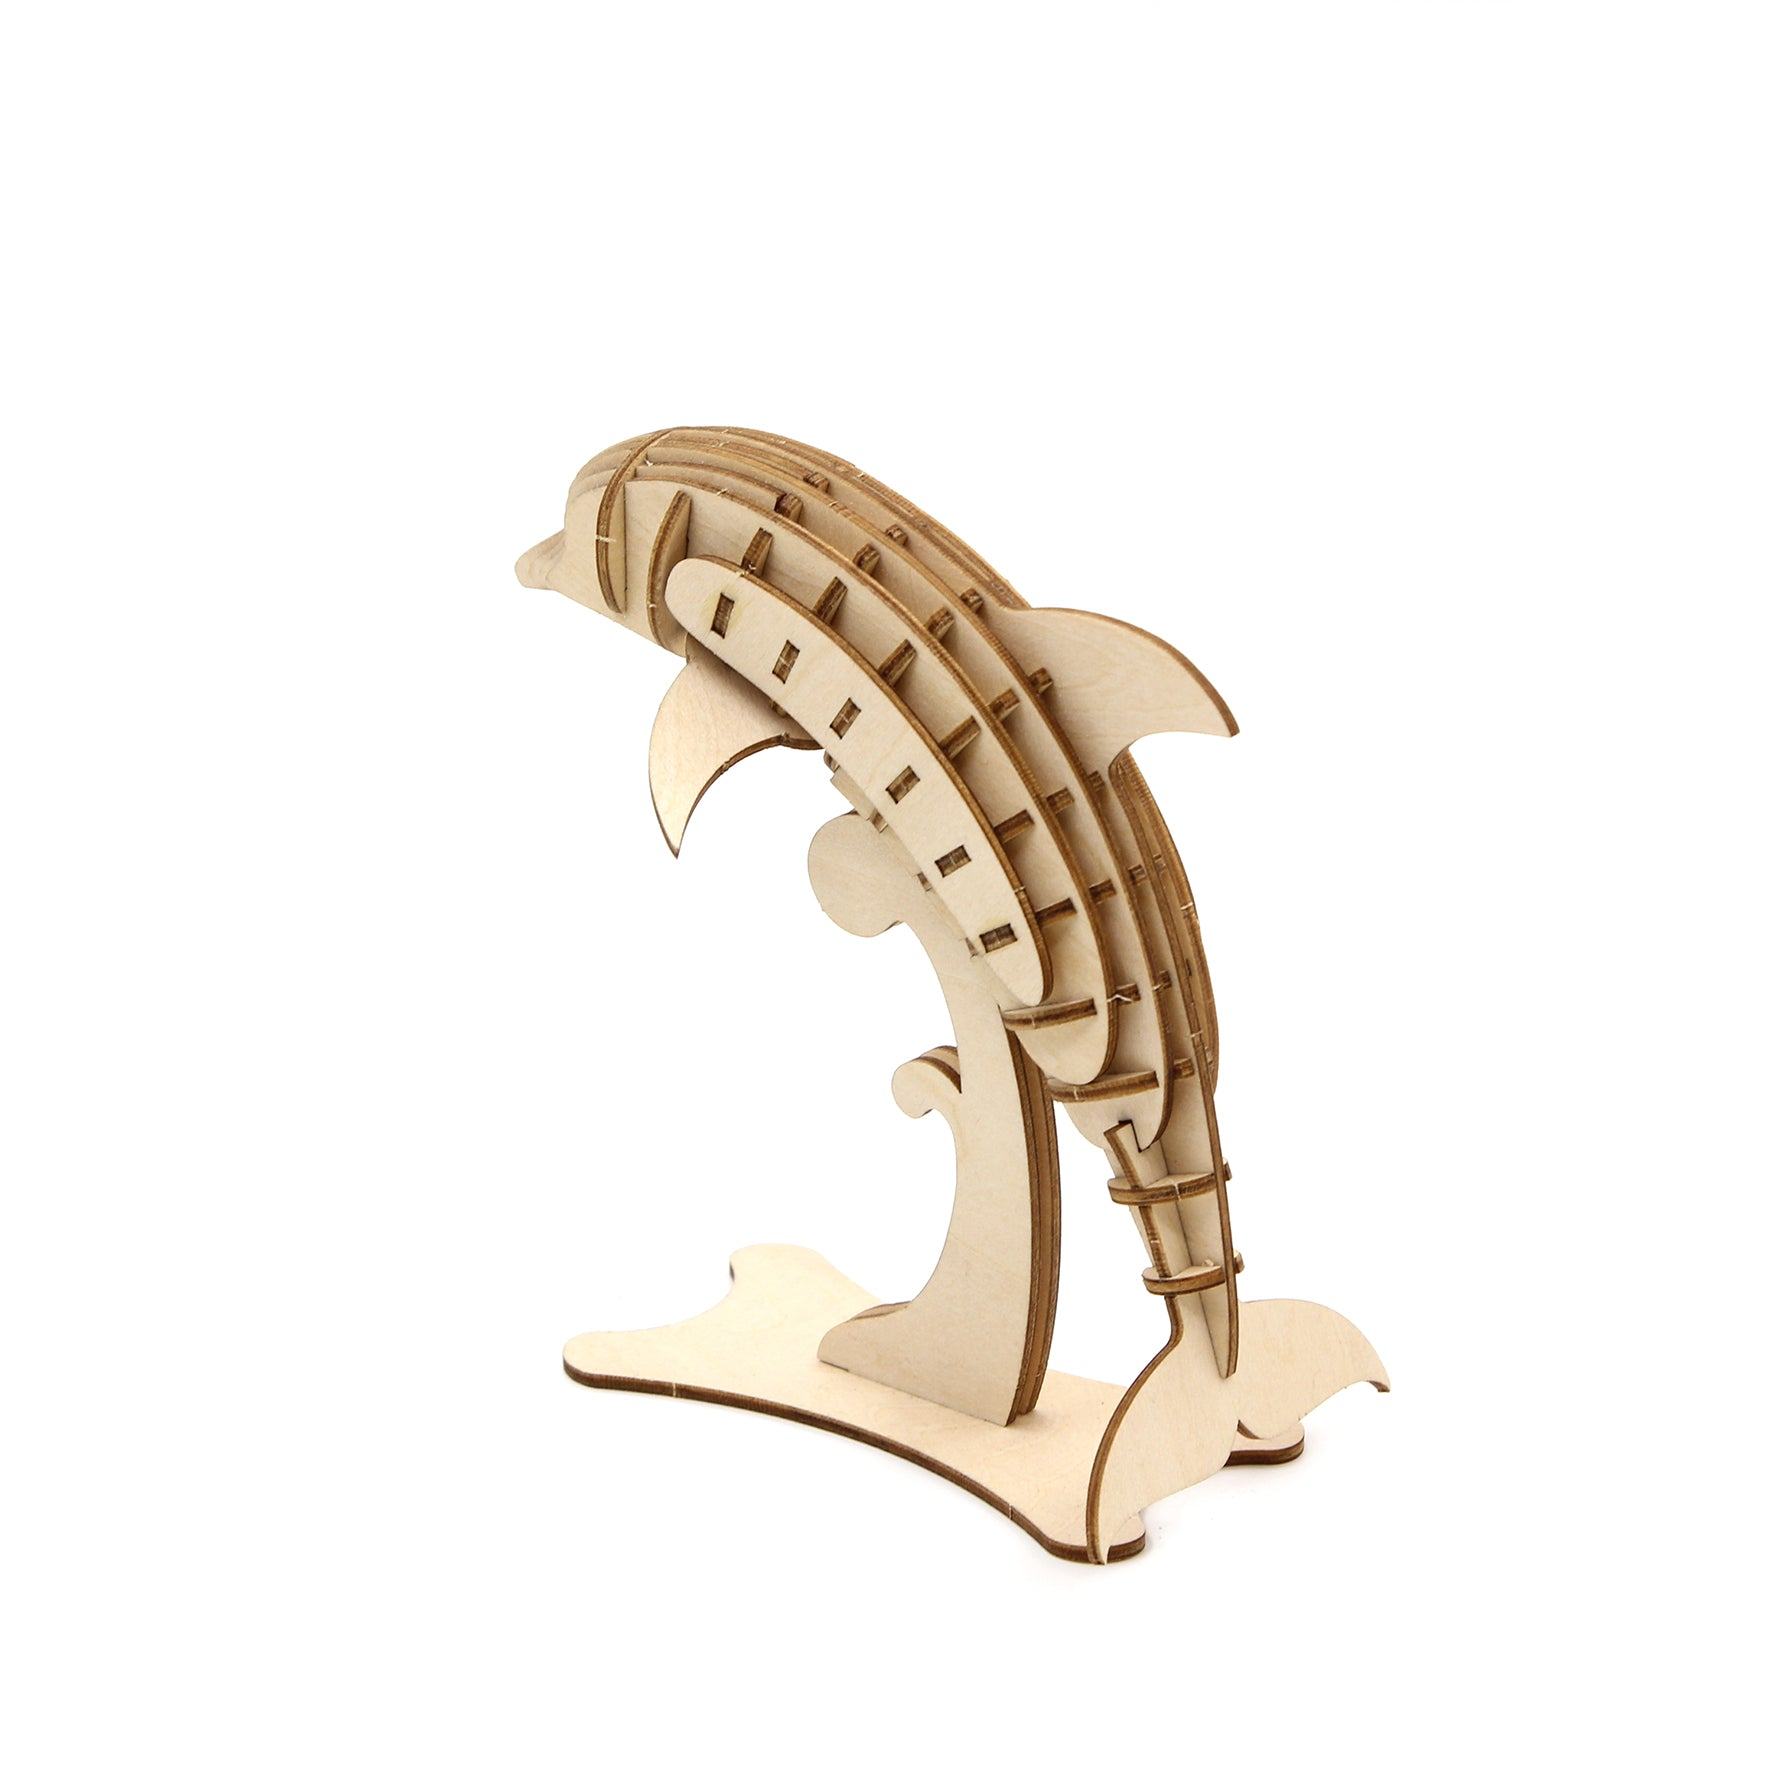 Puzzle 3D madera Jigzle – Dolphin